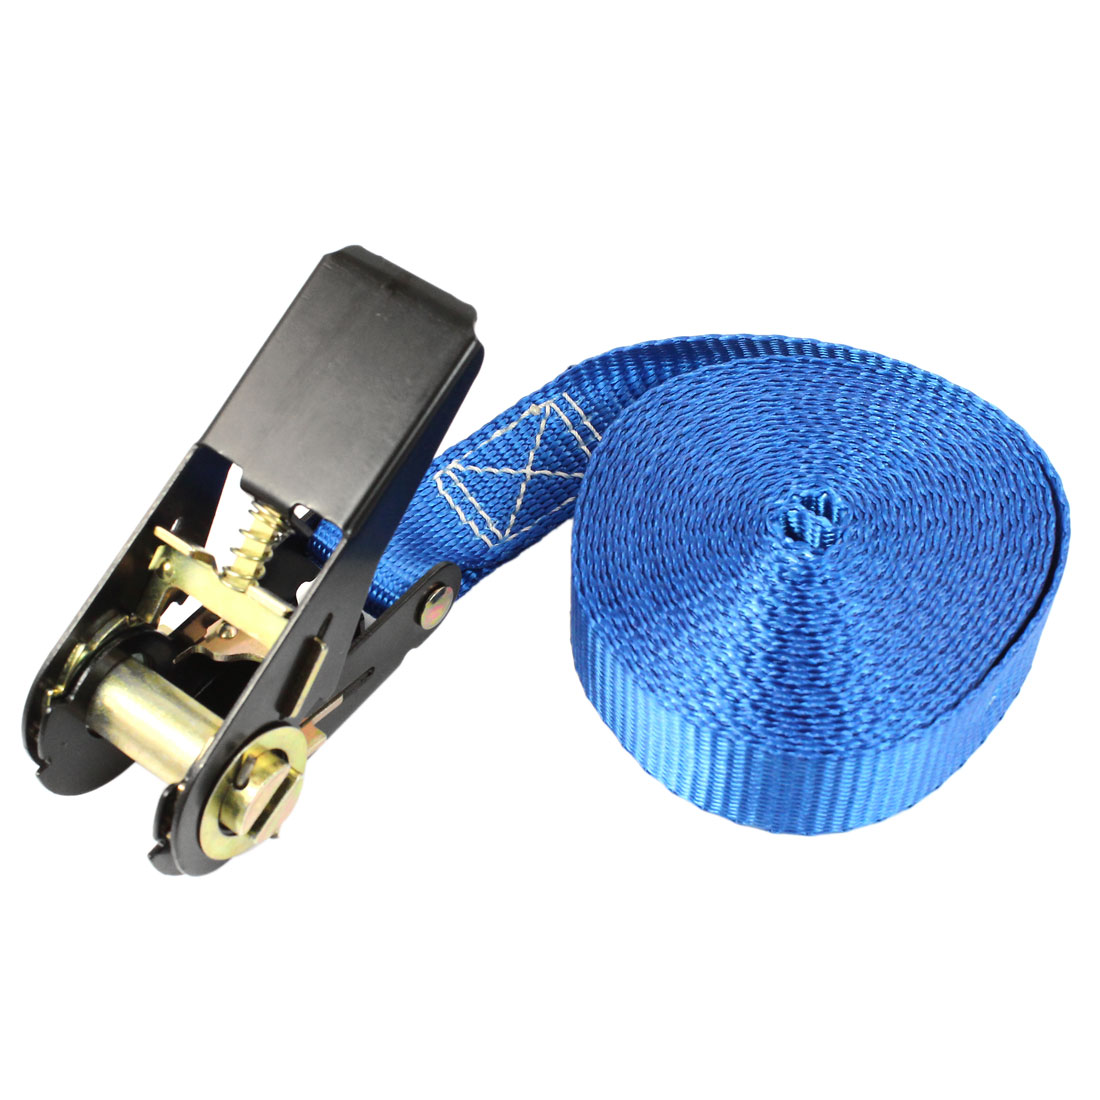 Travel Cargo Binding Band Black Ratchet Tie Down Strap 5M 16ft Blue